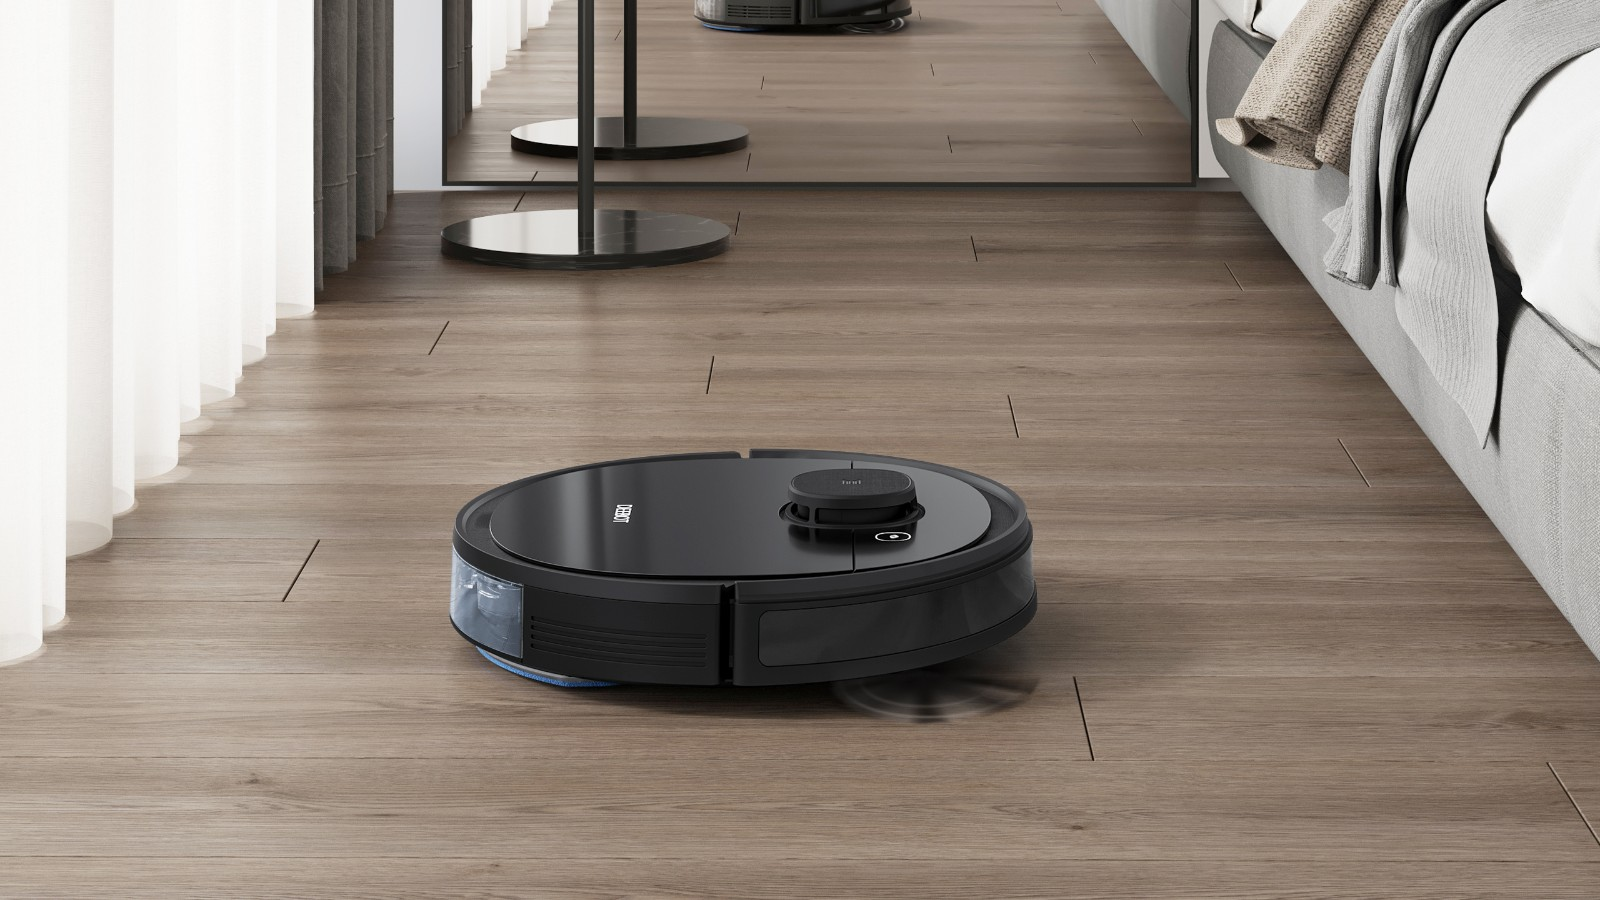 WHAT ARE THE POINTS TO BE REMEMBERED BEFORE BUYING THE ROBO VACUUM CLEANER?